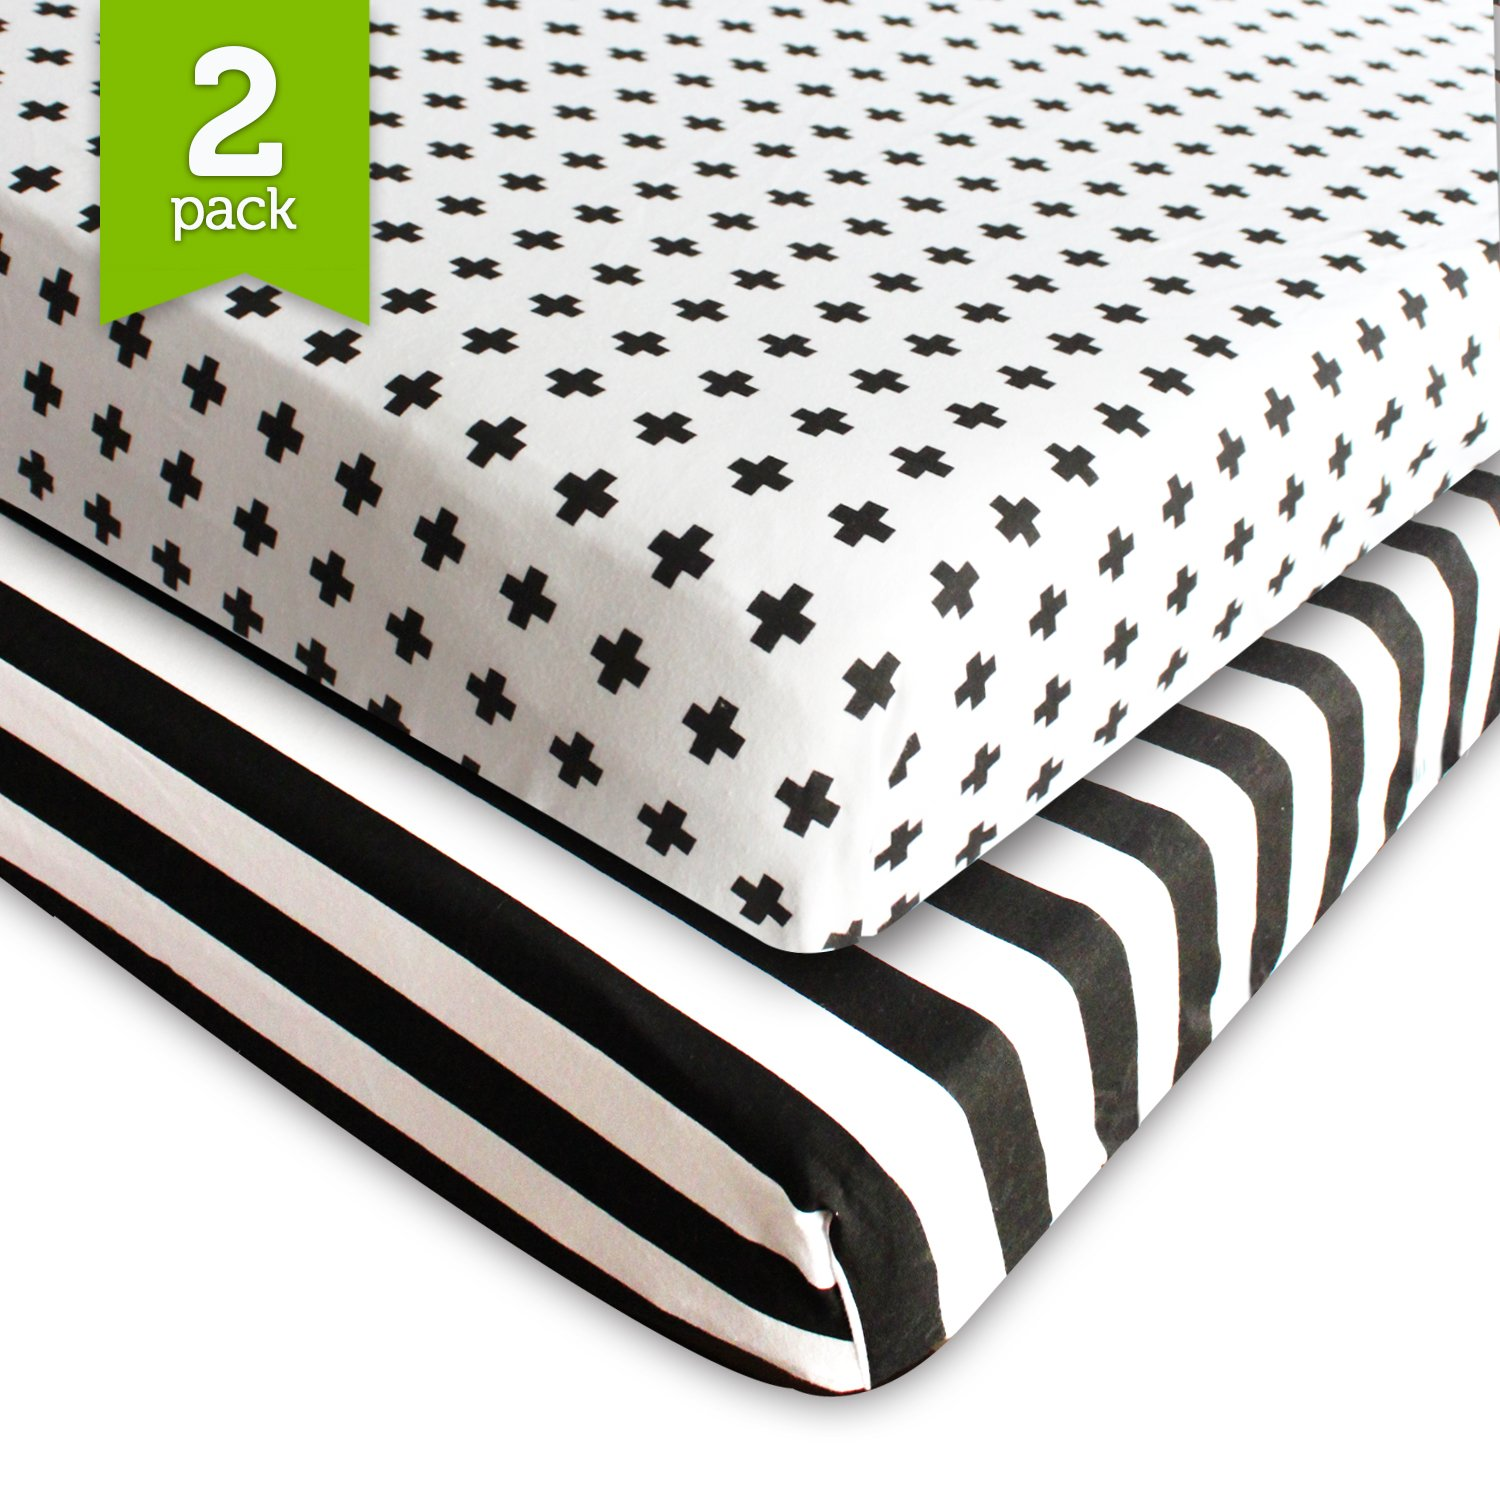 Crib Sheet Fitted Jersey Cotton (2 Pack) Black, White, Stripes, Cross by Ziggy Baby